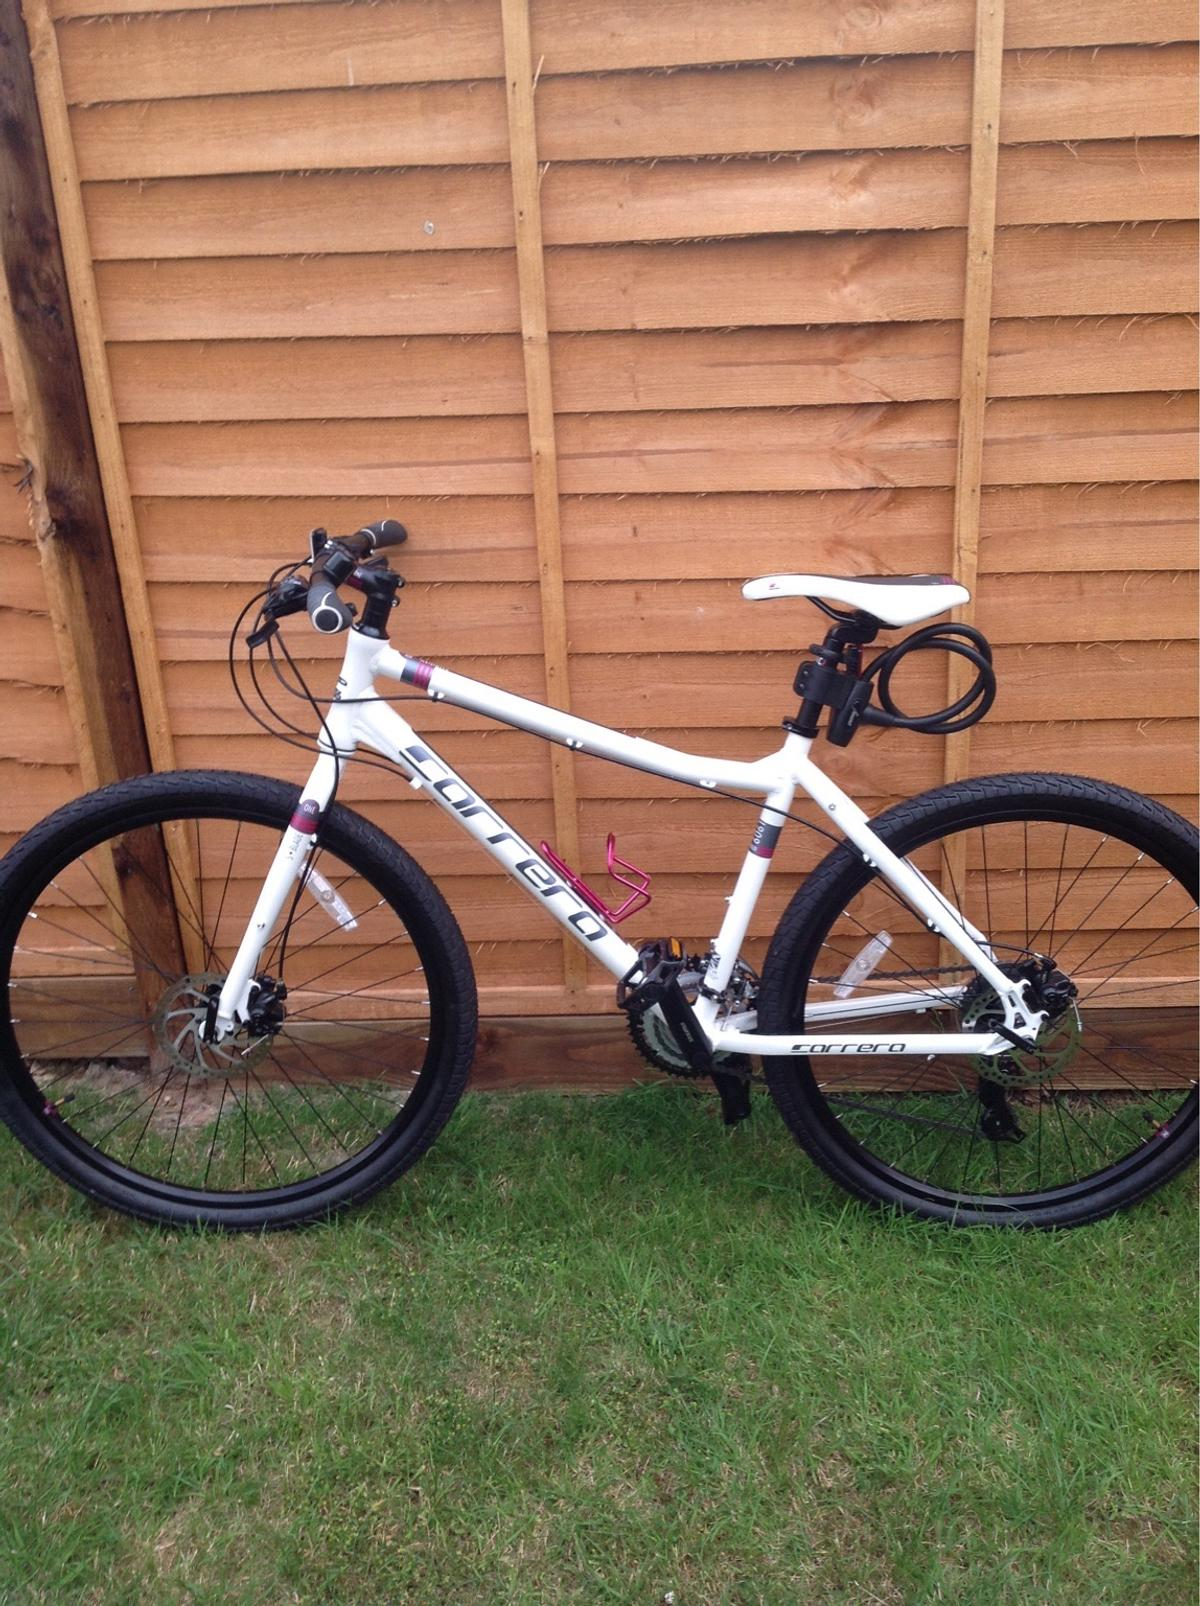 Carrera Subway 1 Ladies Hybrid Bike in MK7 Tree for £200 00 for sale